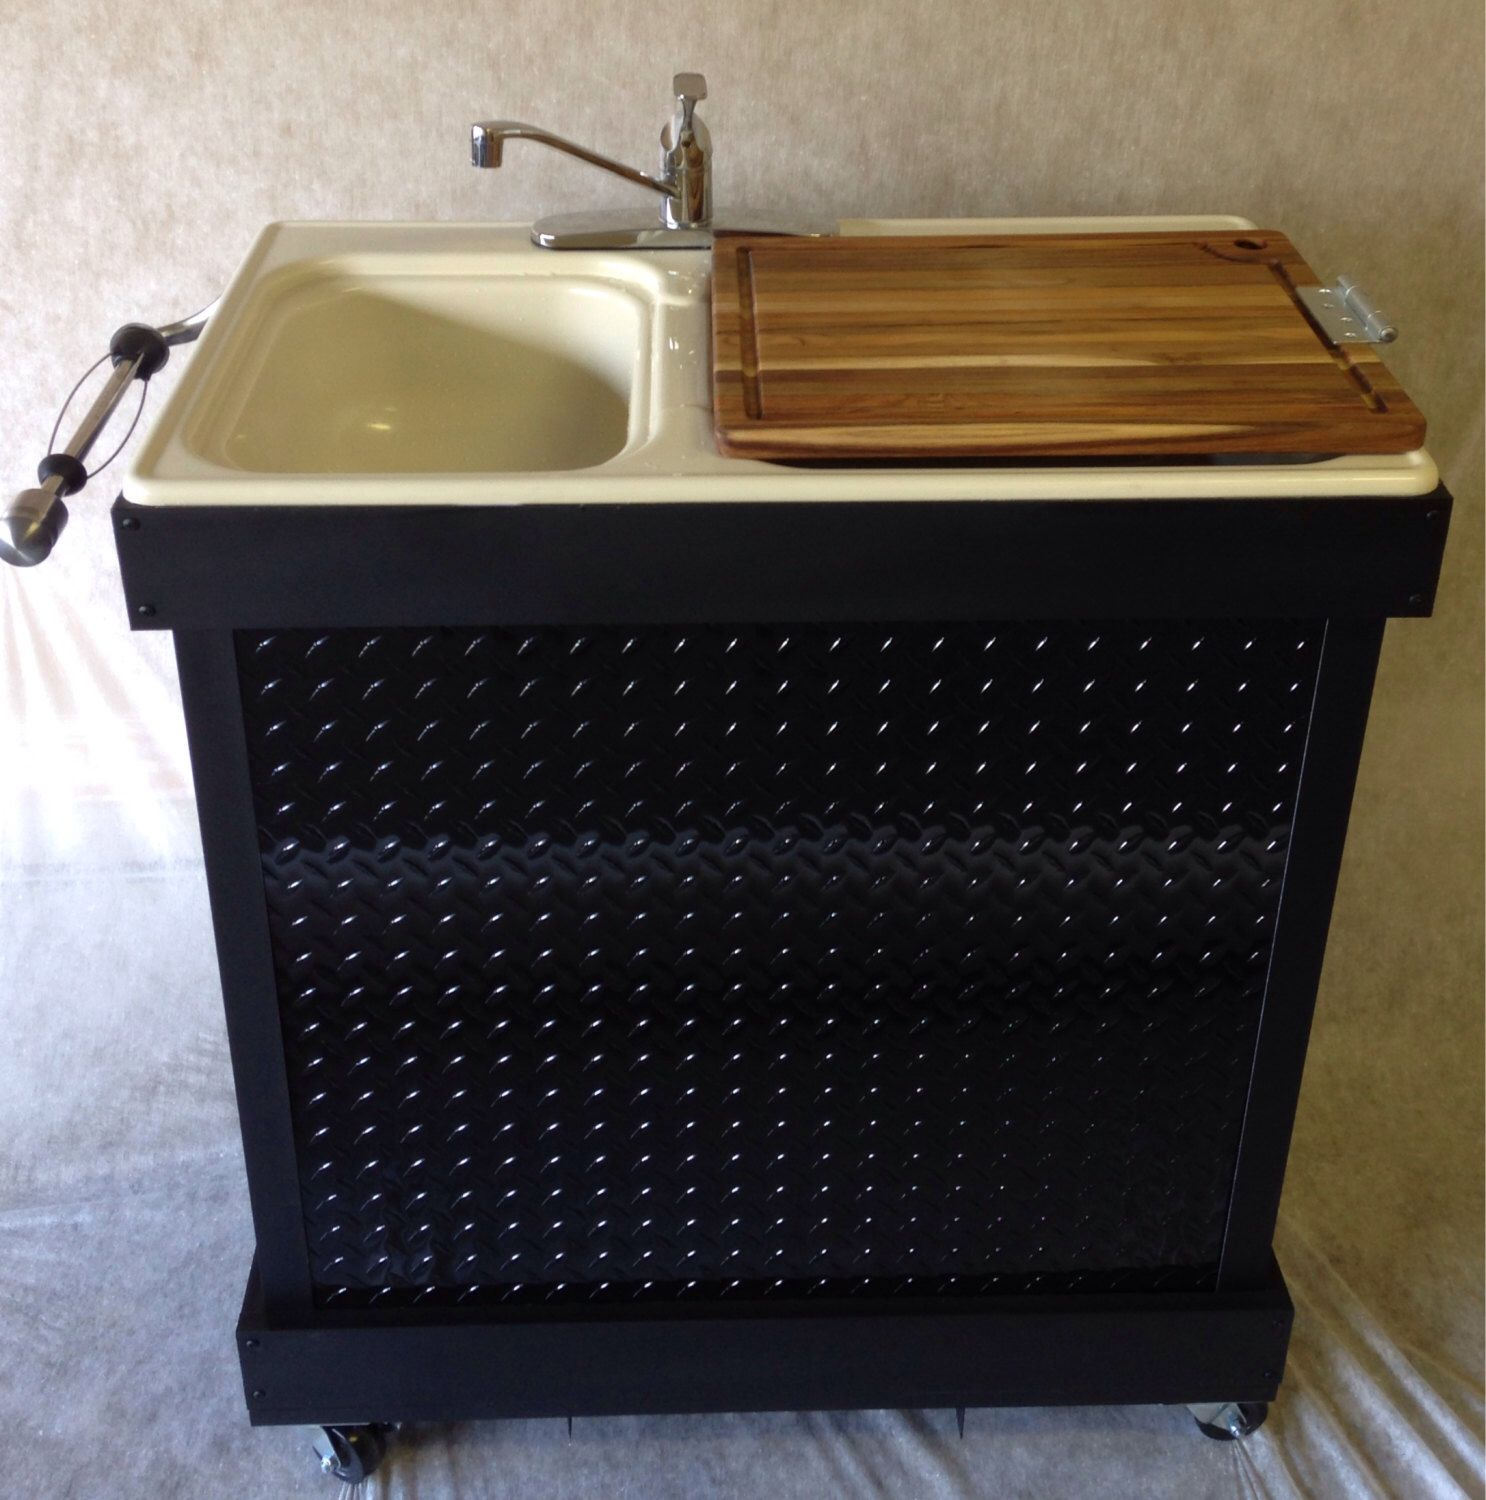 Pin by Lamar B on Portable Sinks | Pinterest | Portable sink, Sinks ...